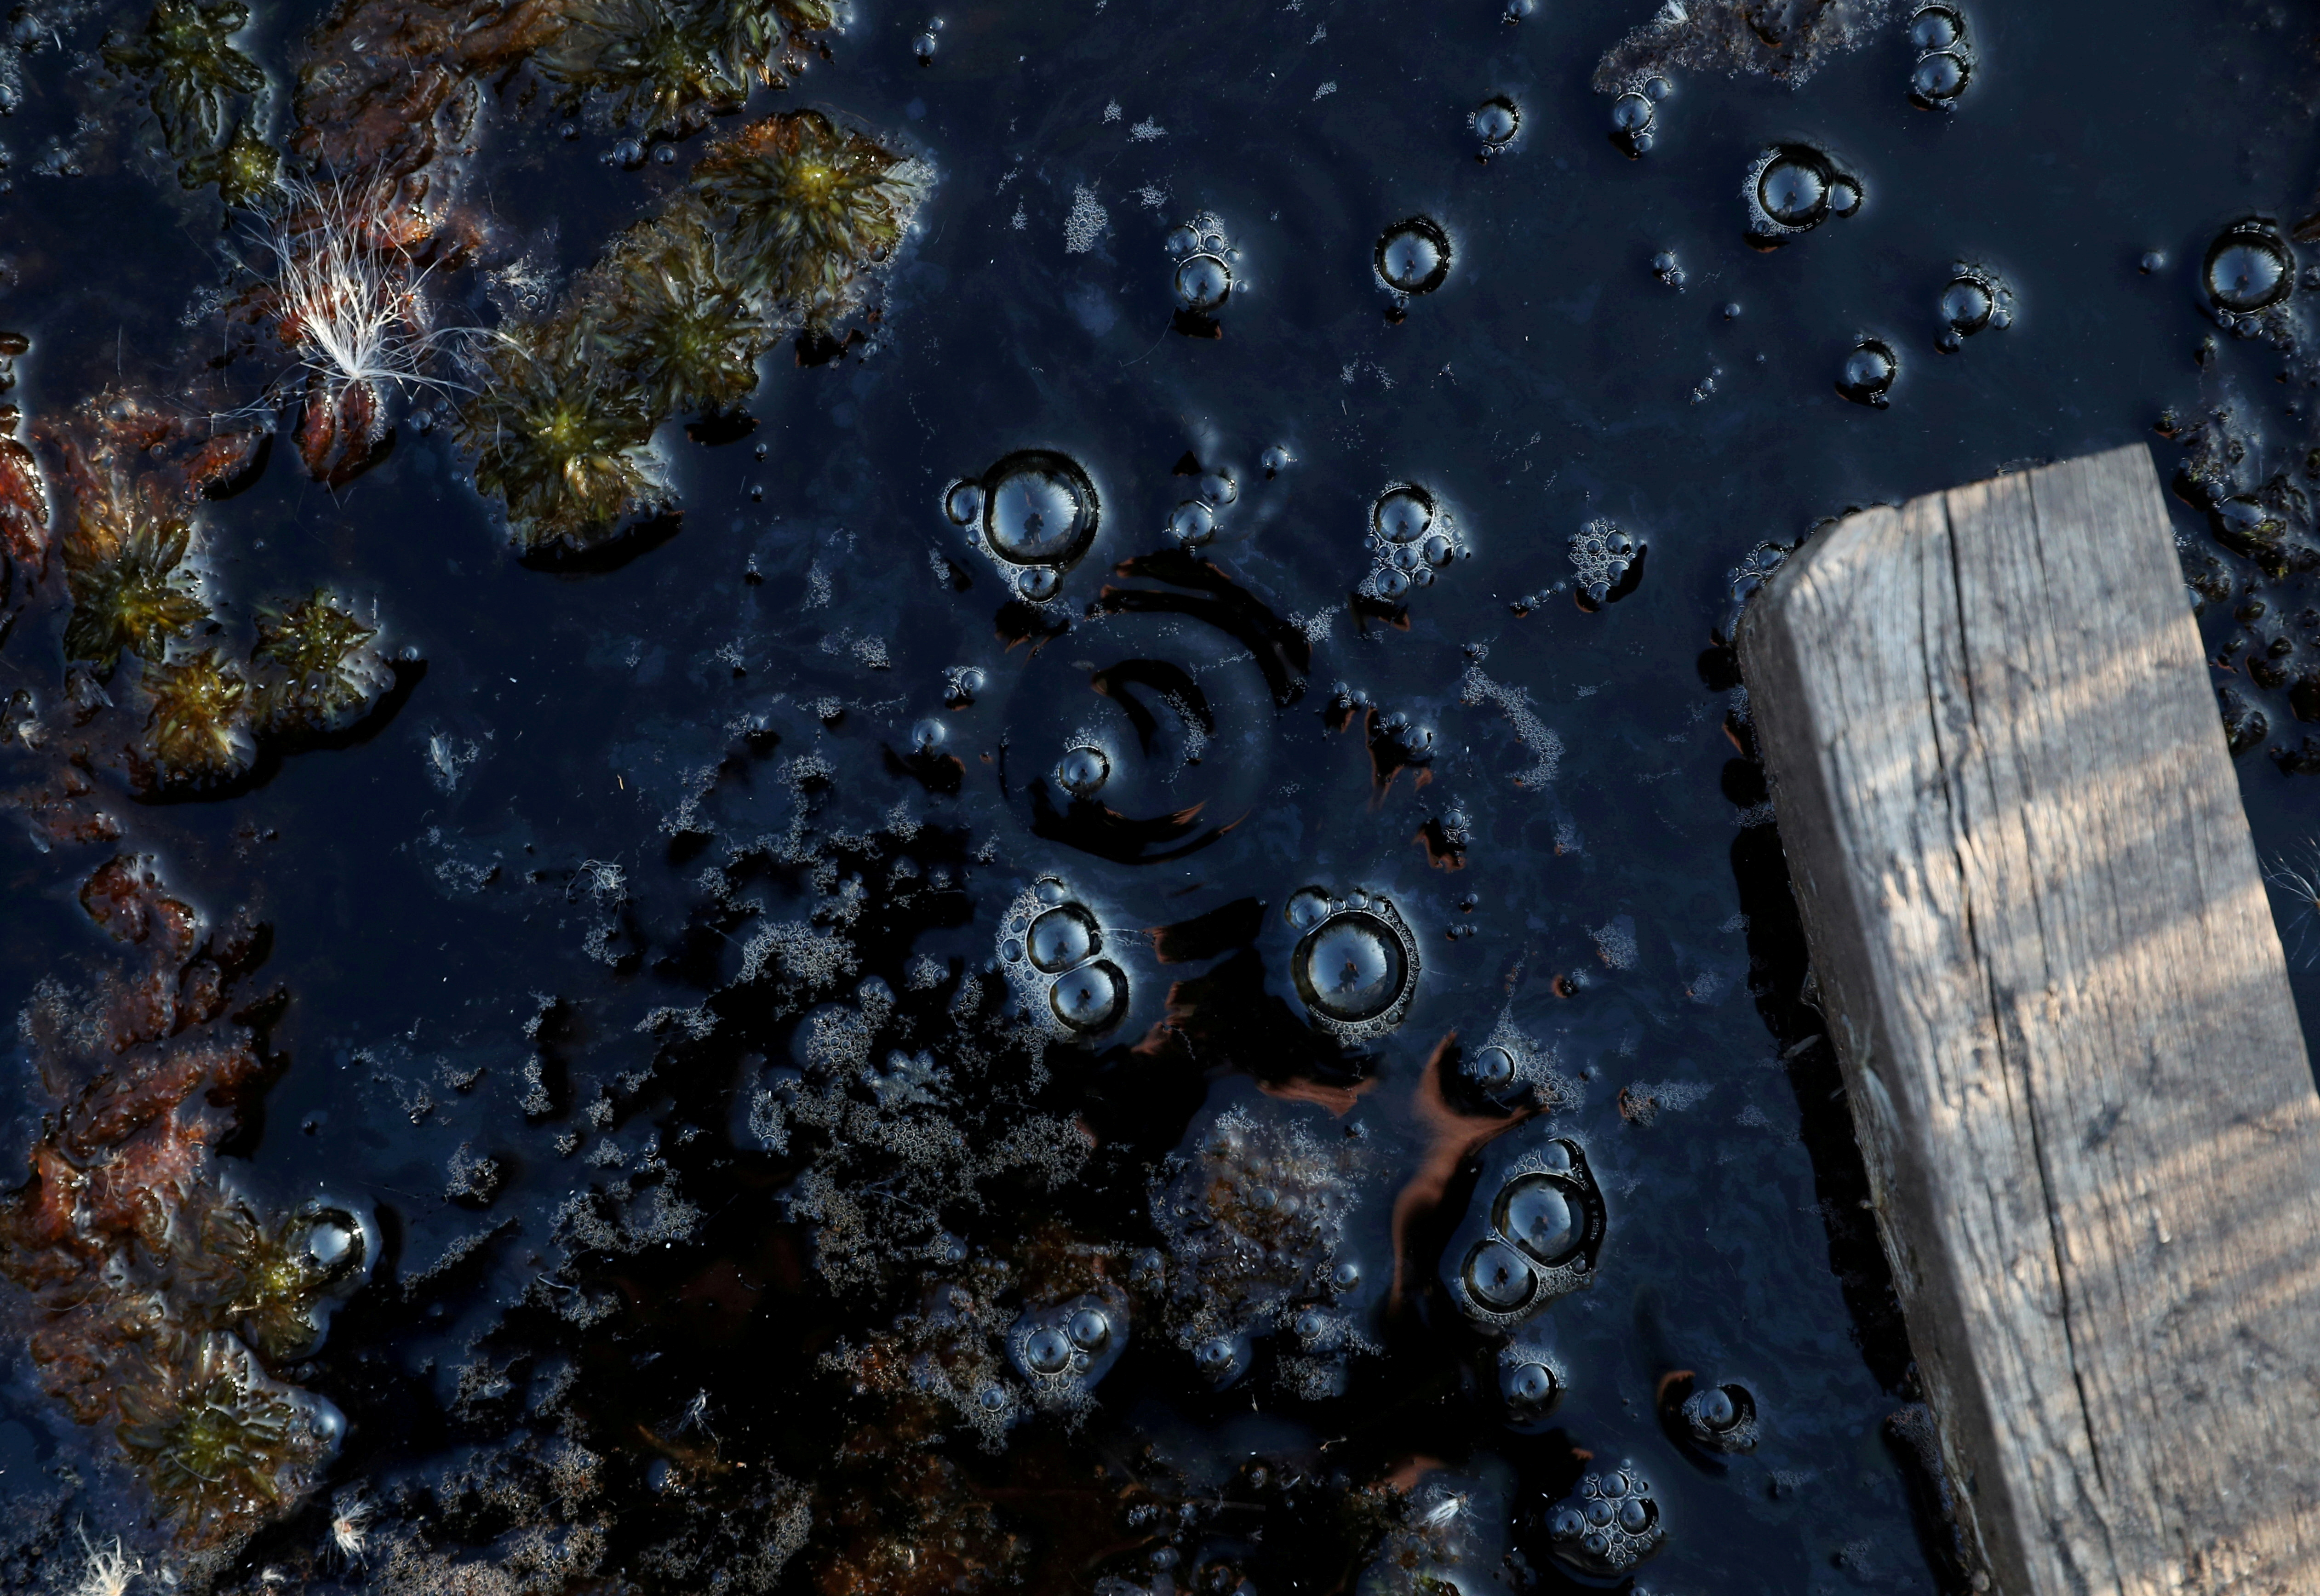 Methane bubbles are seen in an area of marshland at a research post at Stordalen Mire near Abisko, Sweden, August 1, 2019. REUTERS/Hannah McKay